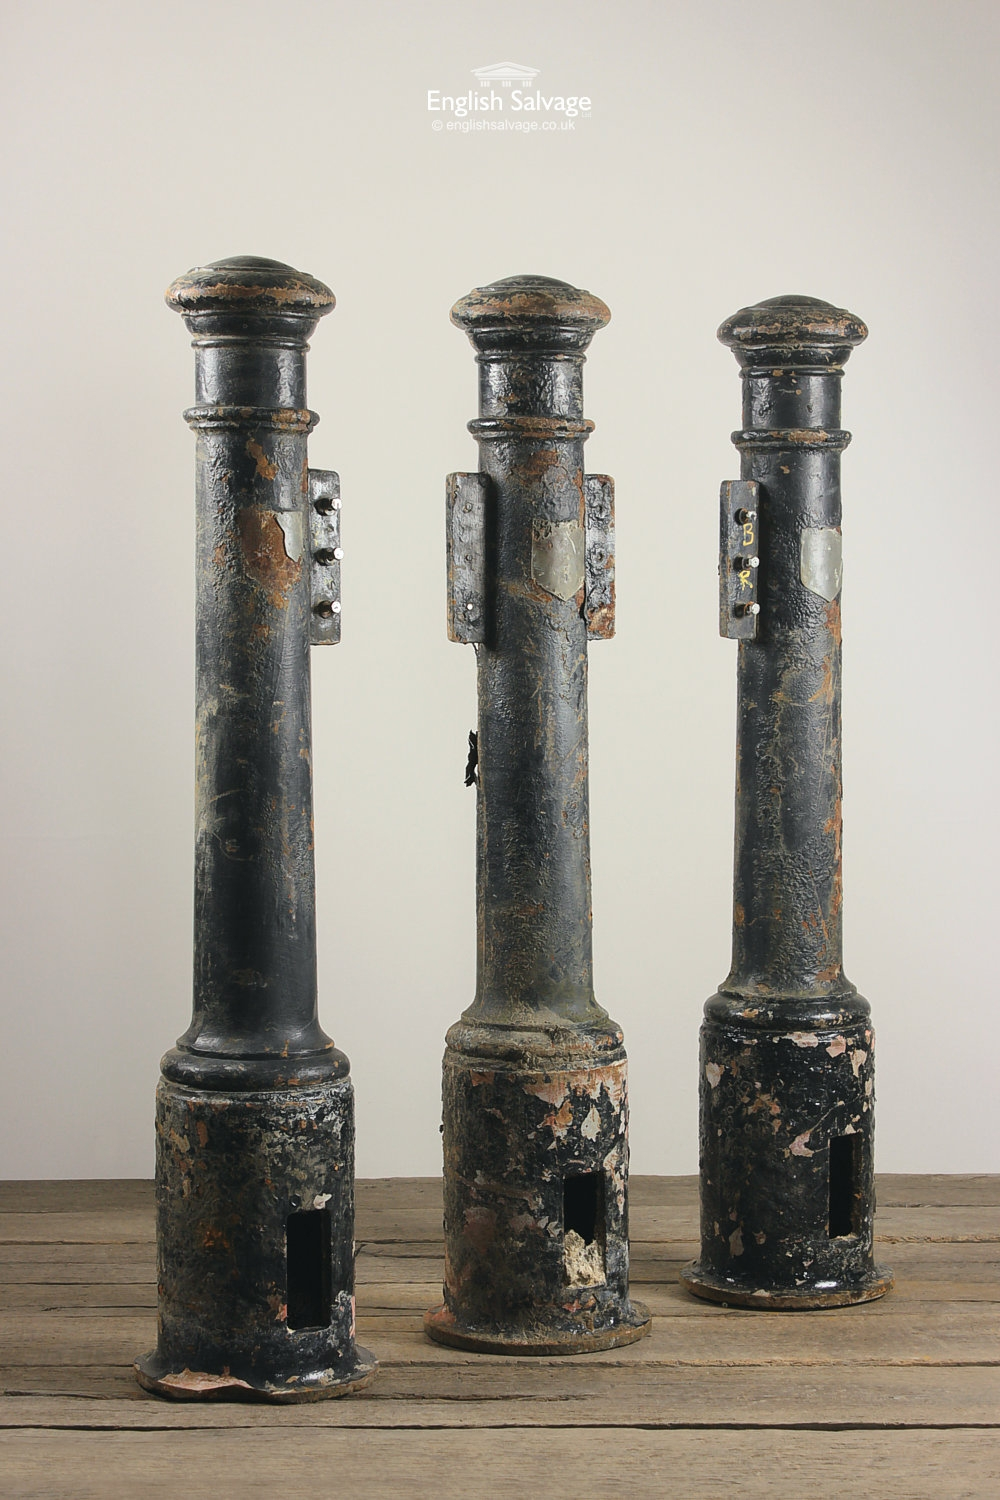 Reclaimed Cast Iron Street Bollards